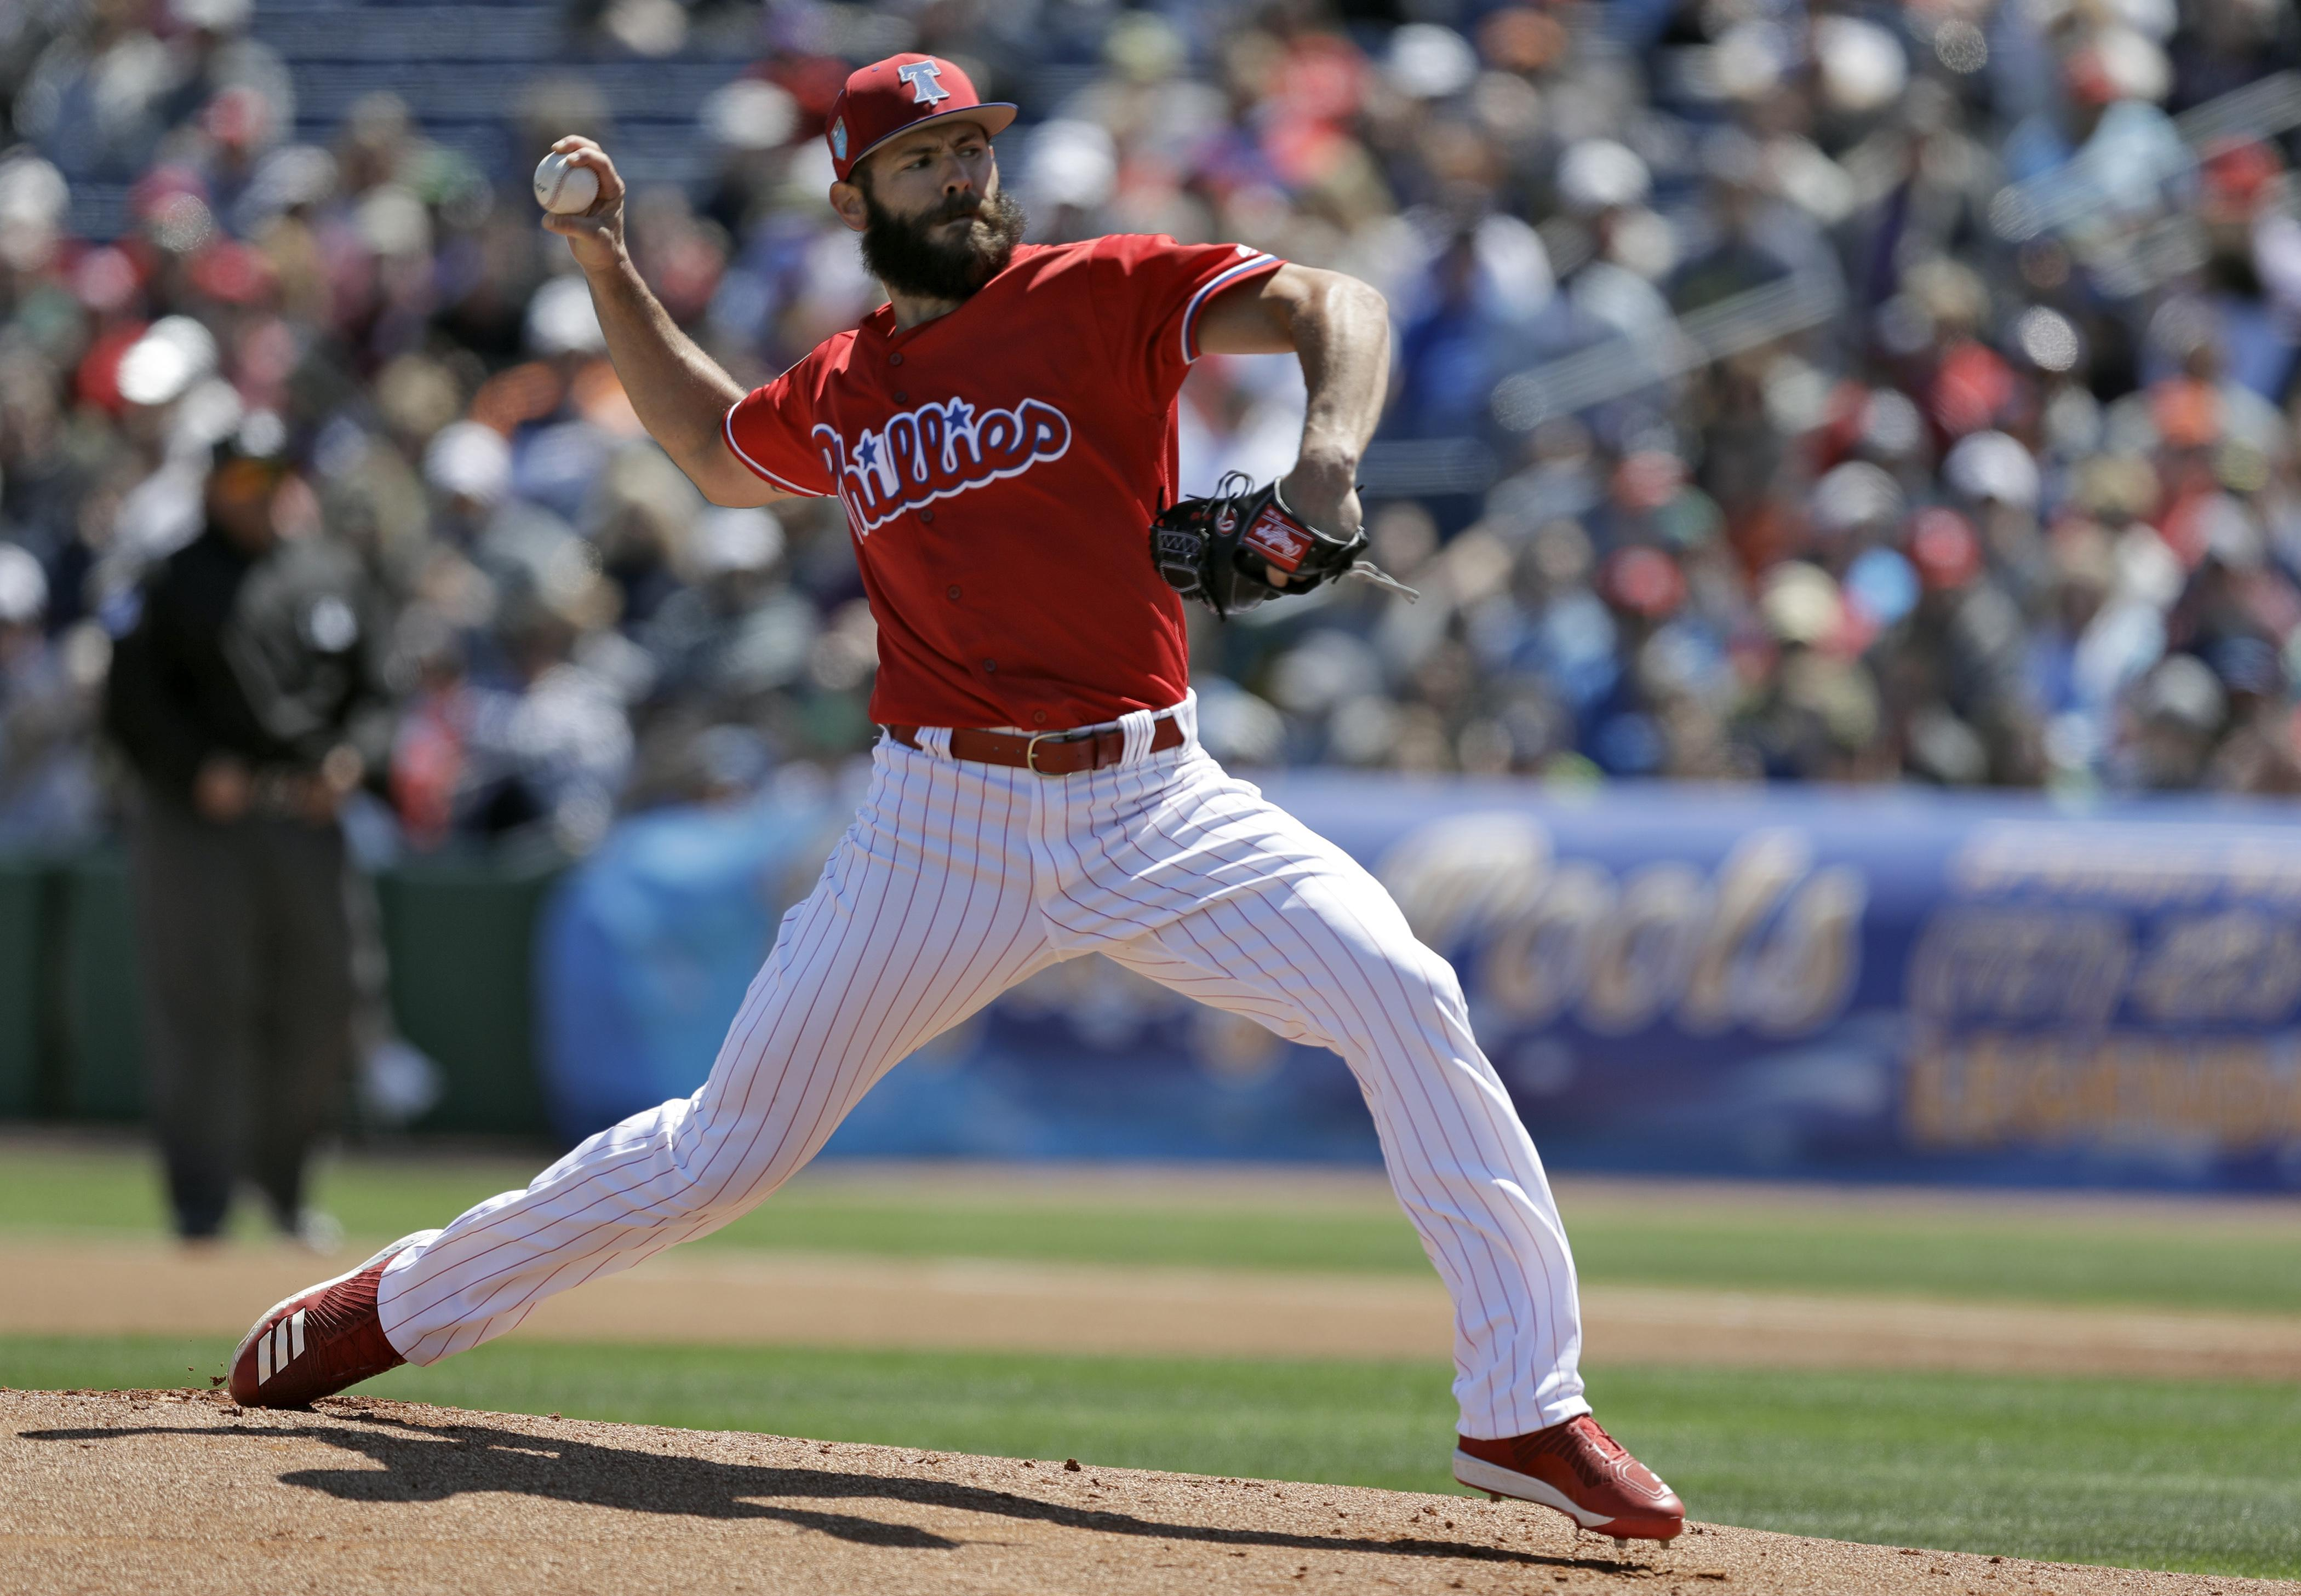 eddeb1a1345 Philadelphia Phillies  Jake Arrieta pitches to the Detroit Tigers during  the first inning of a